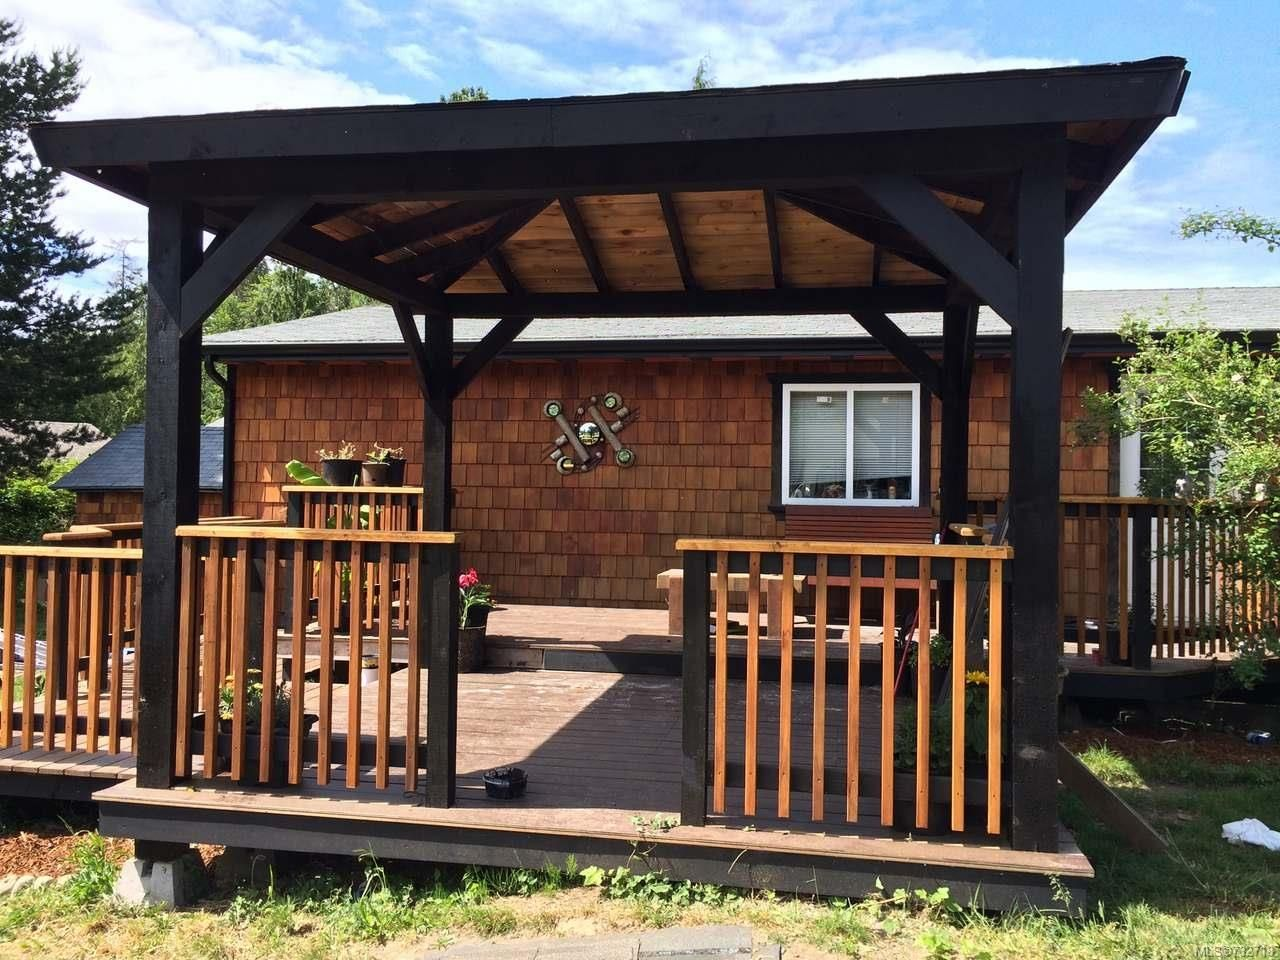 Photo 17: Photos: 921 POPLAR Way in ERRINGTON: PQ Errington/Coombs/Hilliers Manufactured Home for sale (Parksville/Qualicum)  : MLS®# 732718